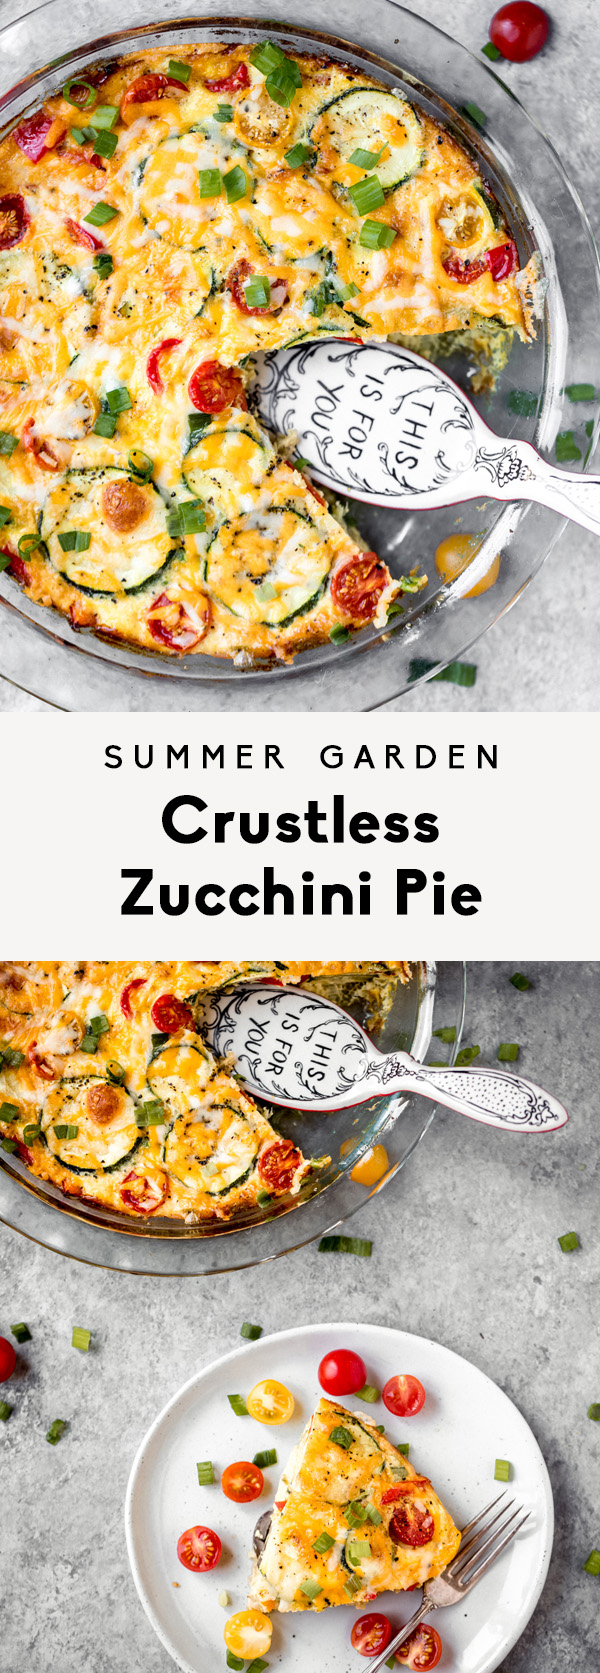 collage of summer garden crustless zucchini pie in a pie pan and on a plate